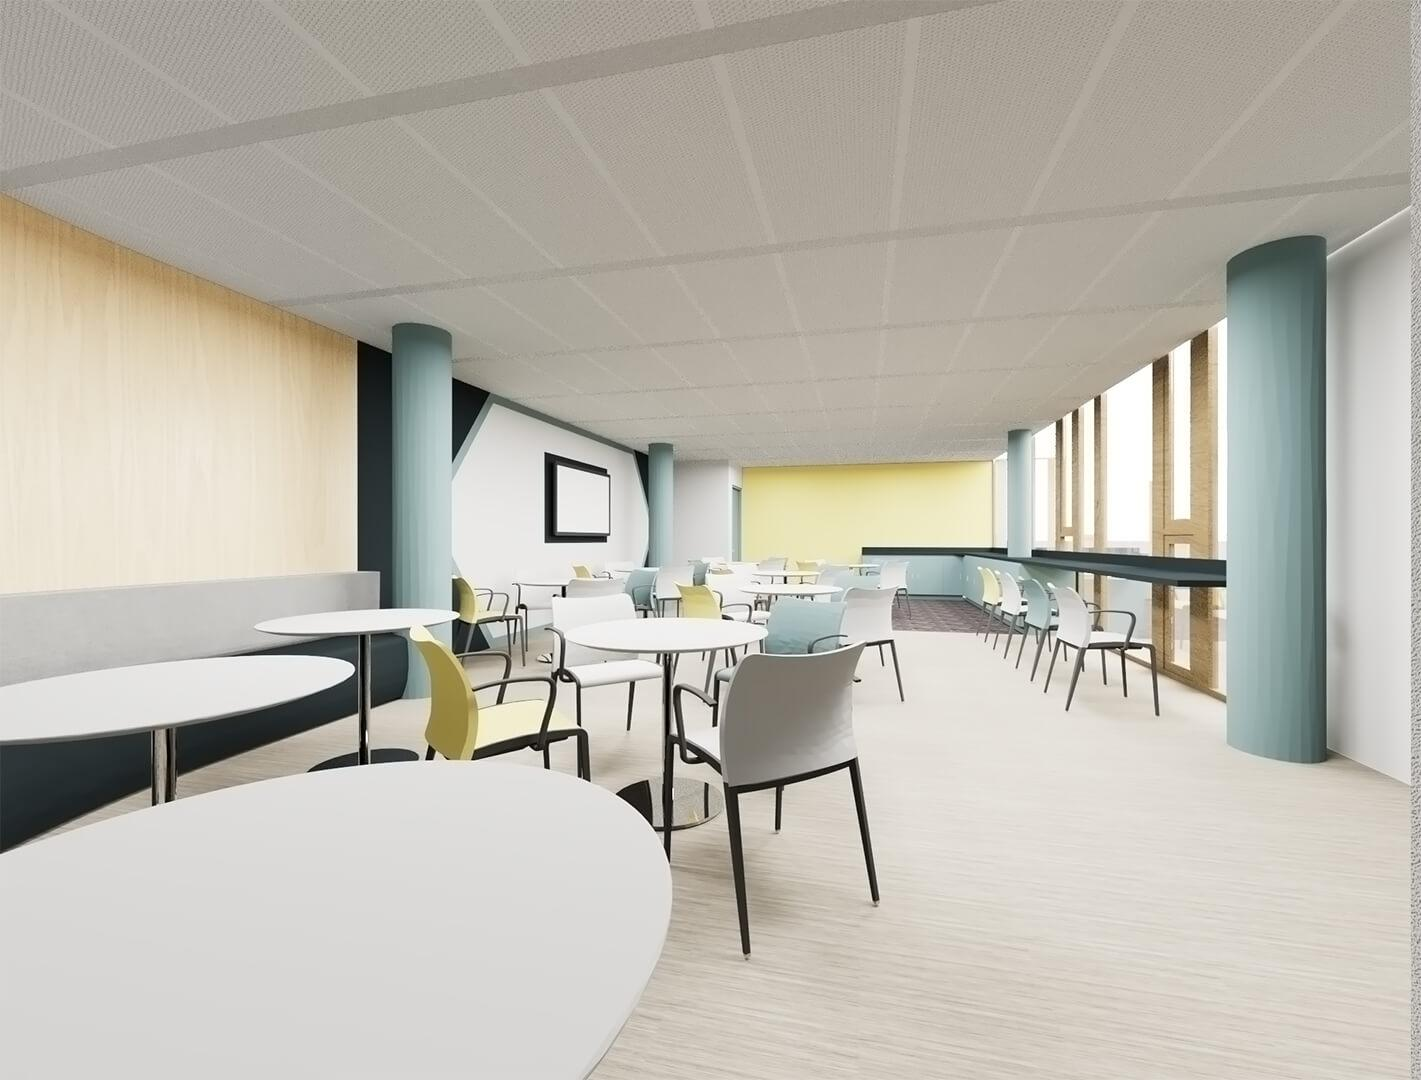 Global Financial Services Client in Luxembourg - Architectural Support and Fit-Out Project